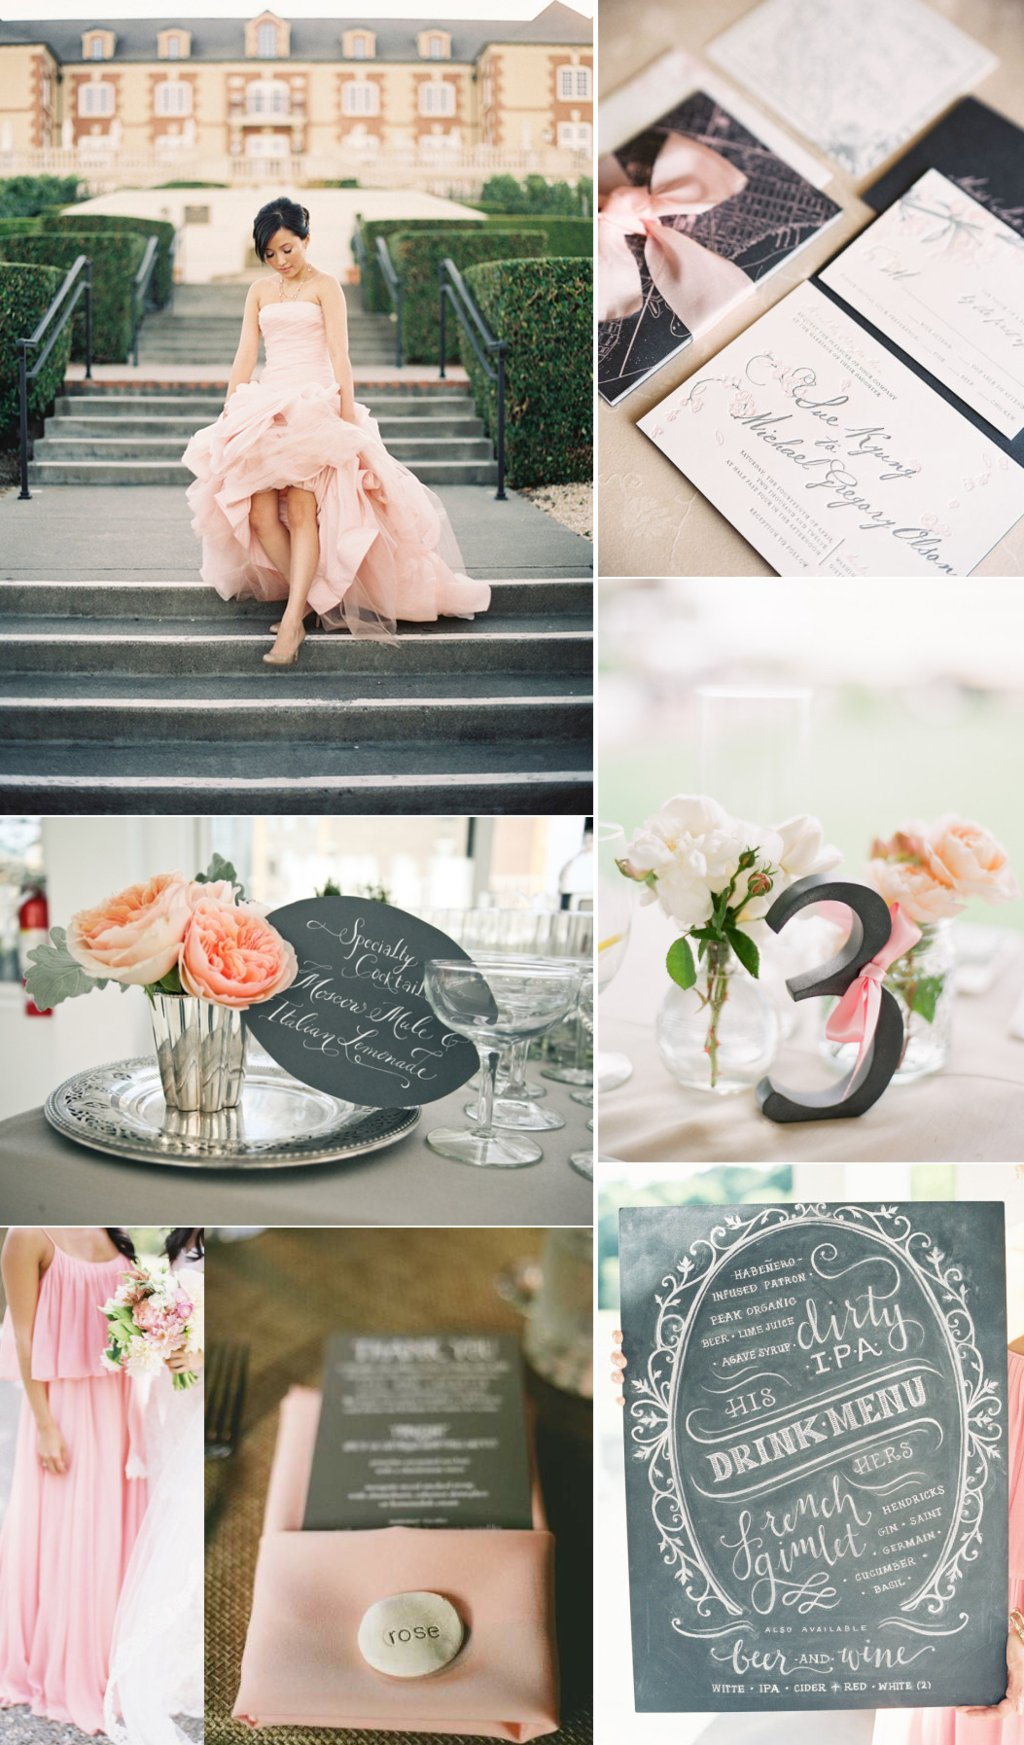 Wedding Color Inspiration Blush and Charcoal